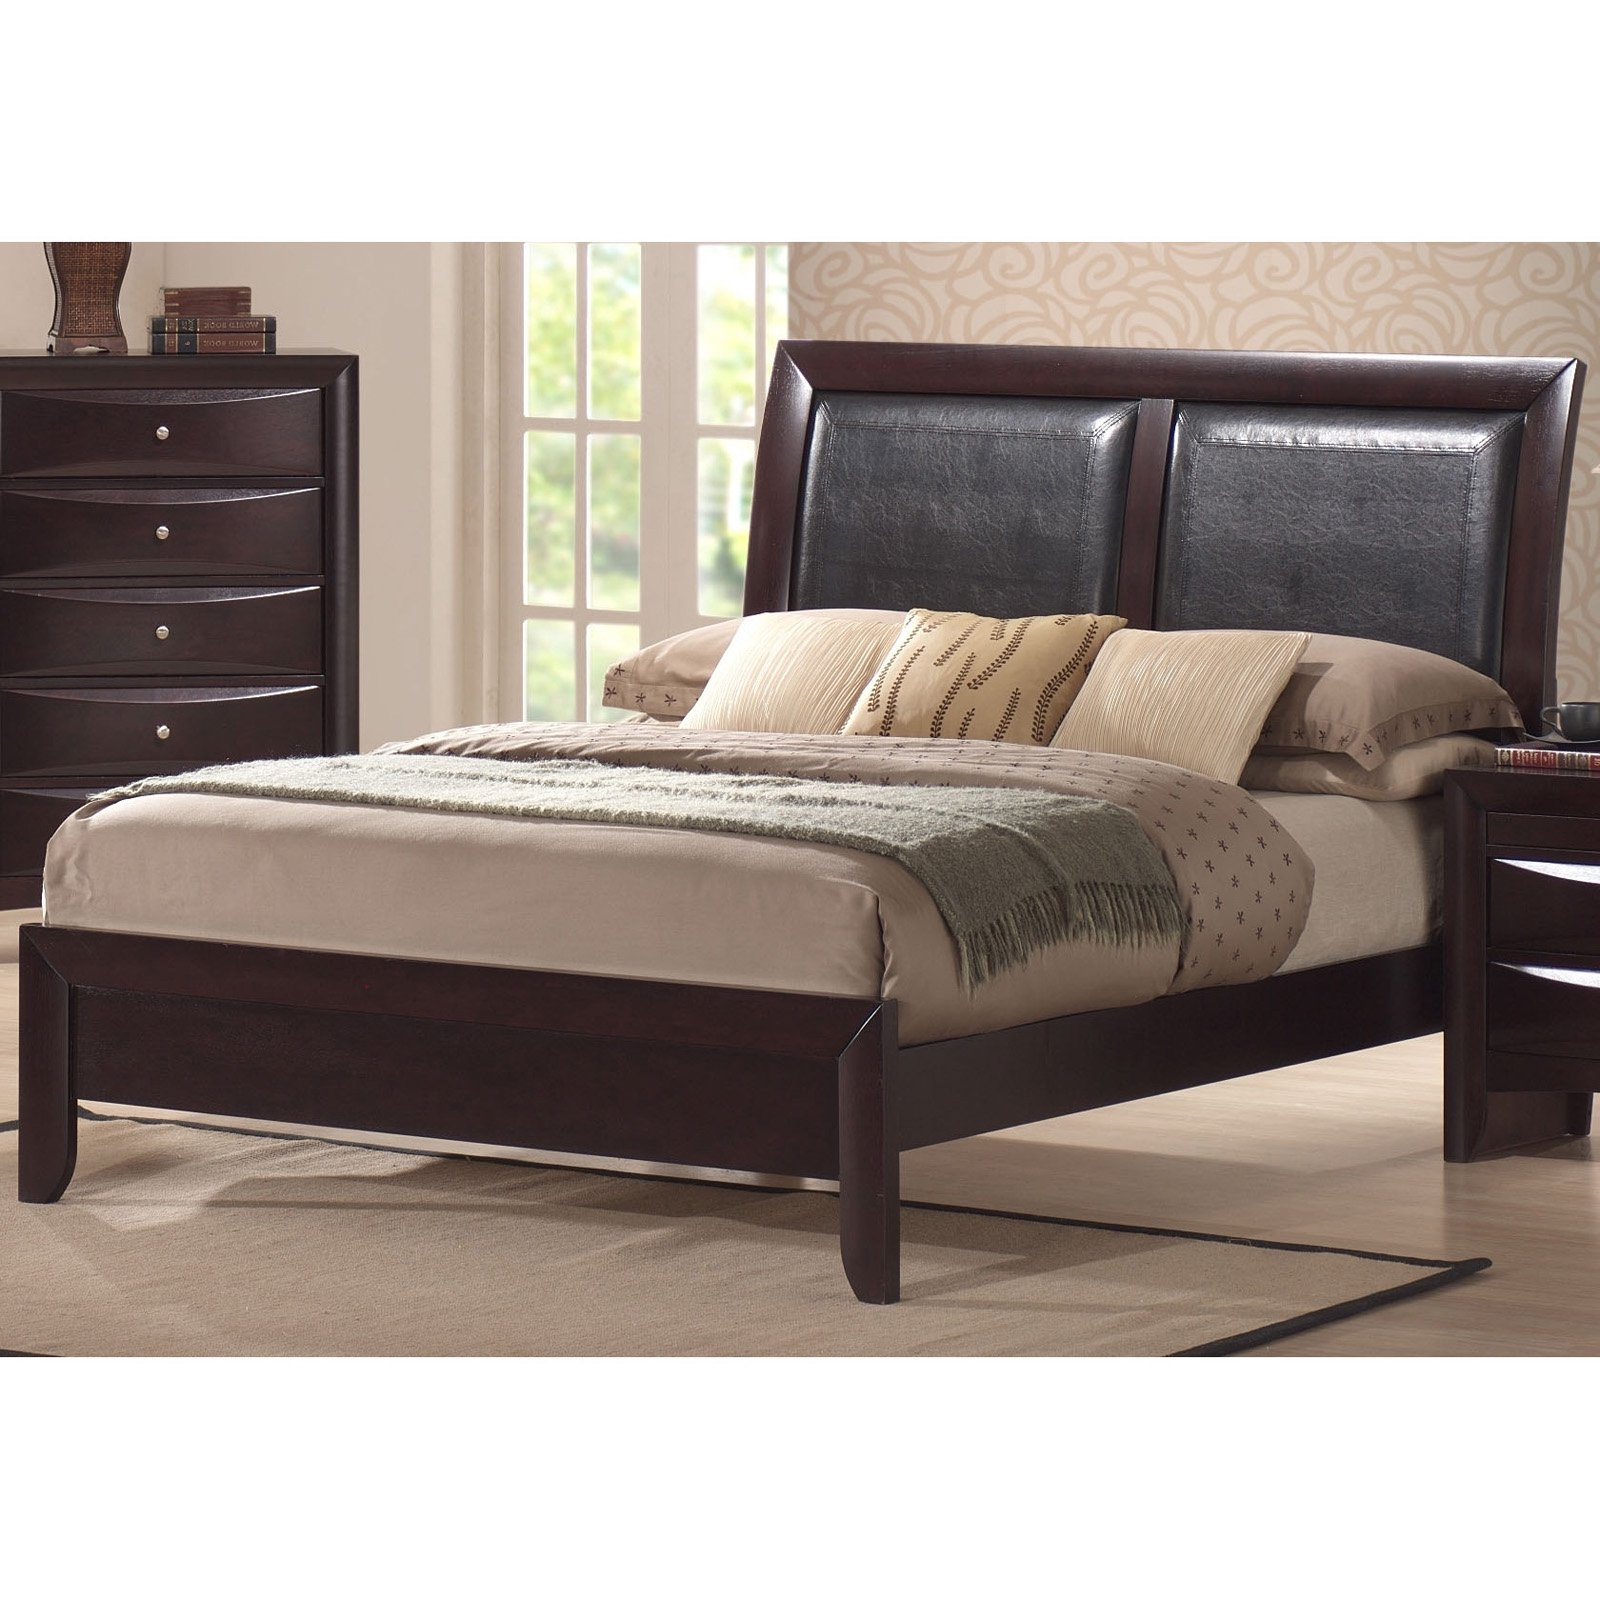 Picket House Furnishings Emily Panel Bed